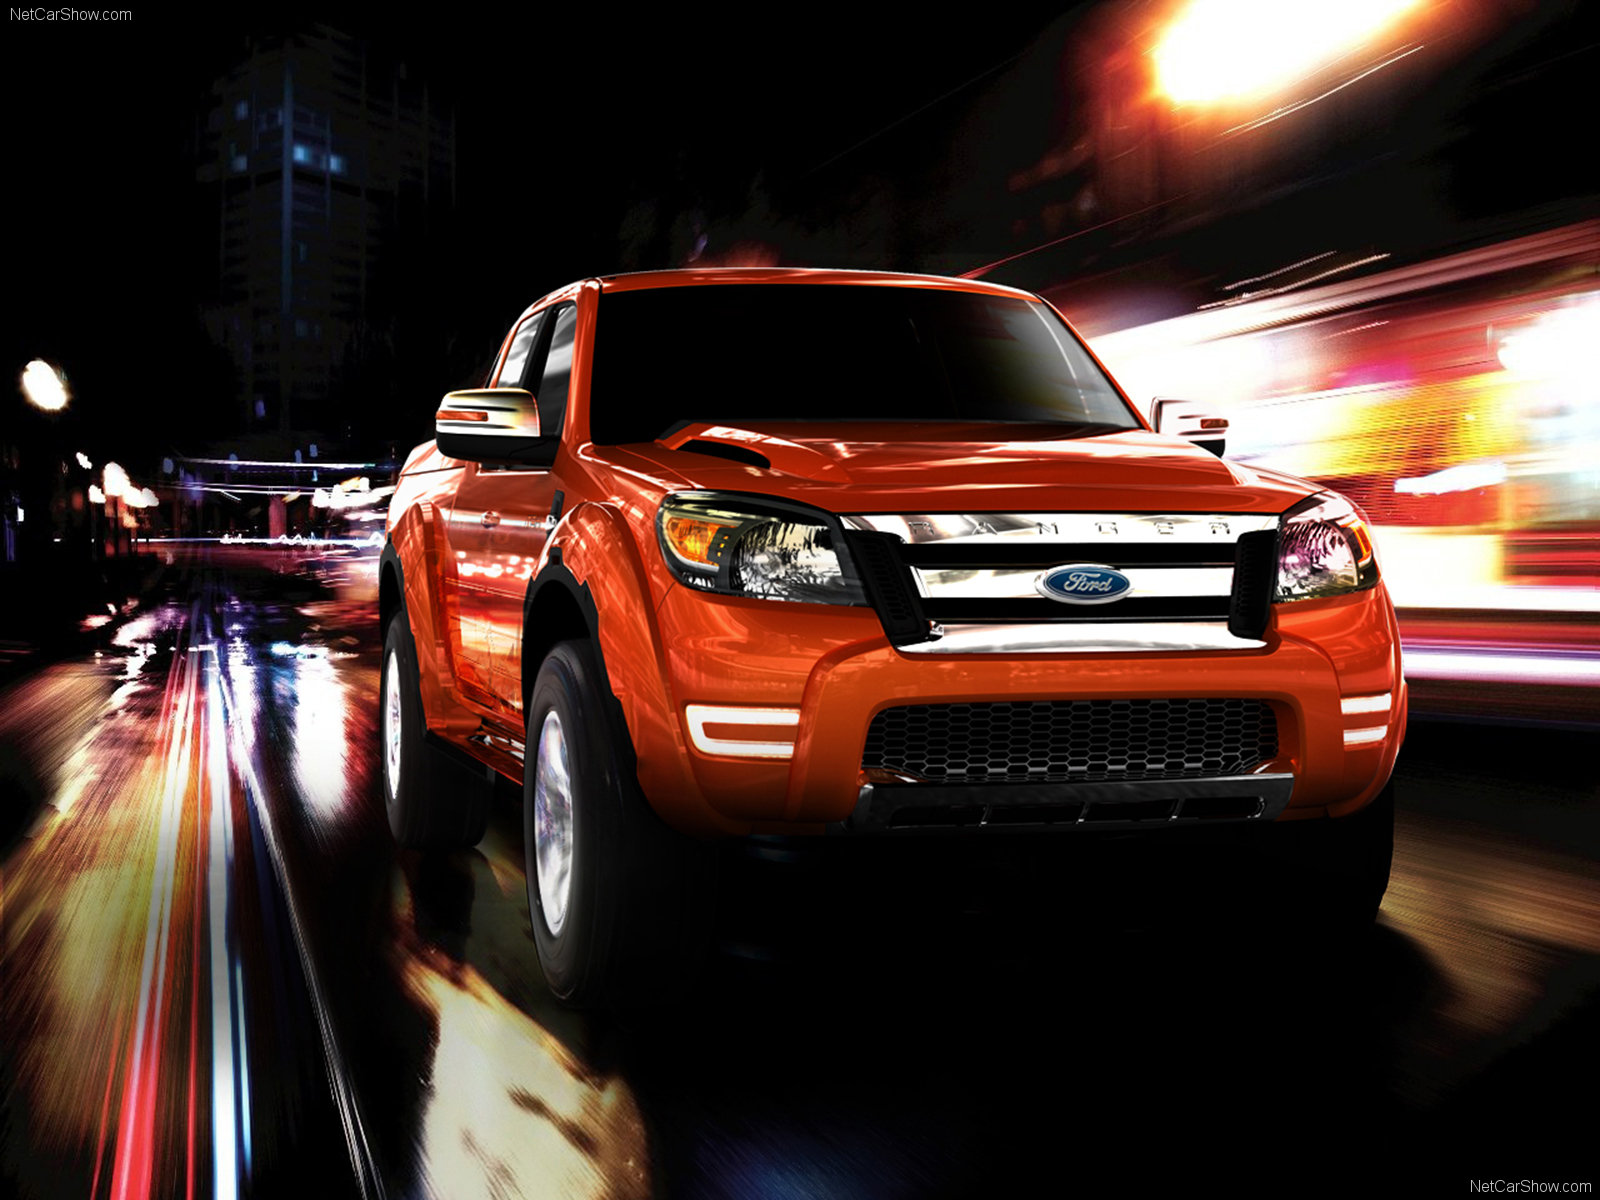 Ford Ranger Max Concept photos - PhotoGallery with 6 pics ...